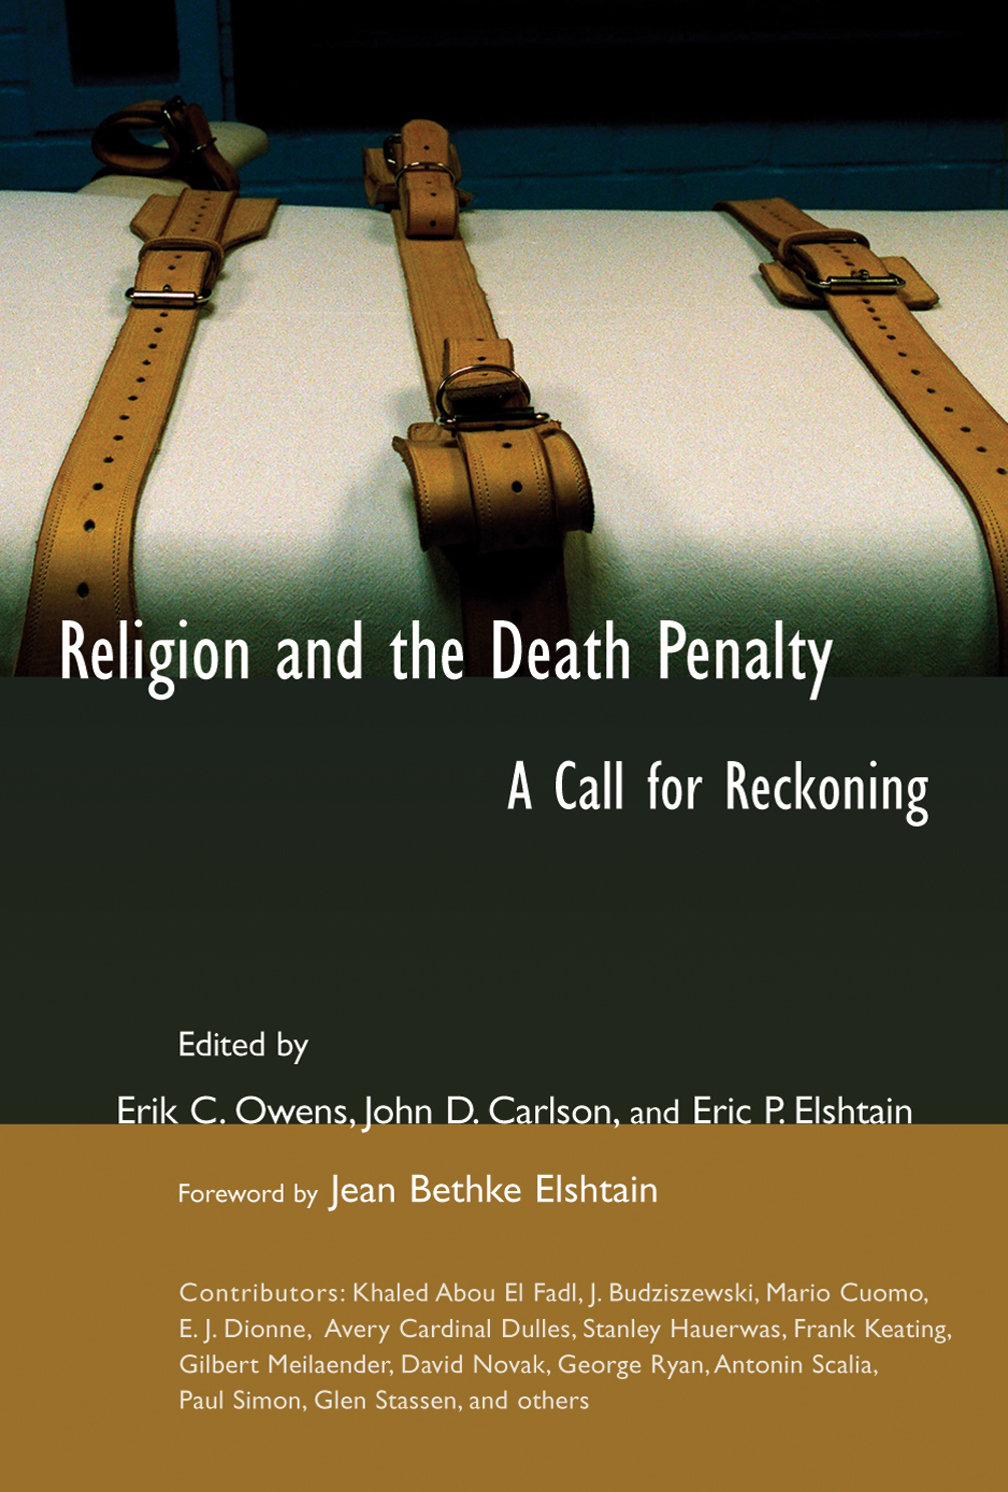 opinion essay about the death penalty Research paper on death penalty by lauren bradshaw  in my opinion, would have to be put to death to reach the deterrent goal  death penalty essay,.